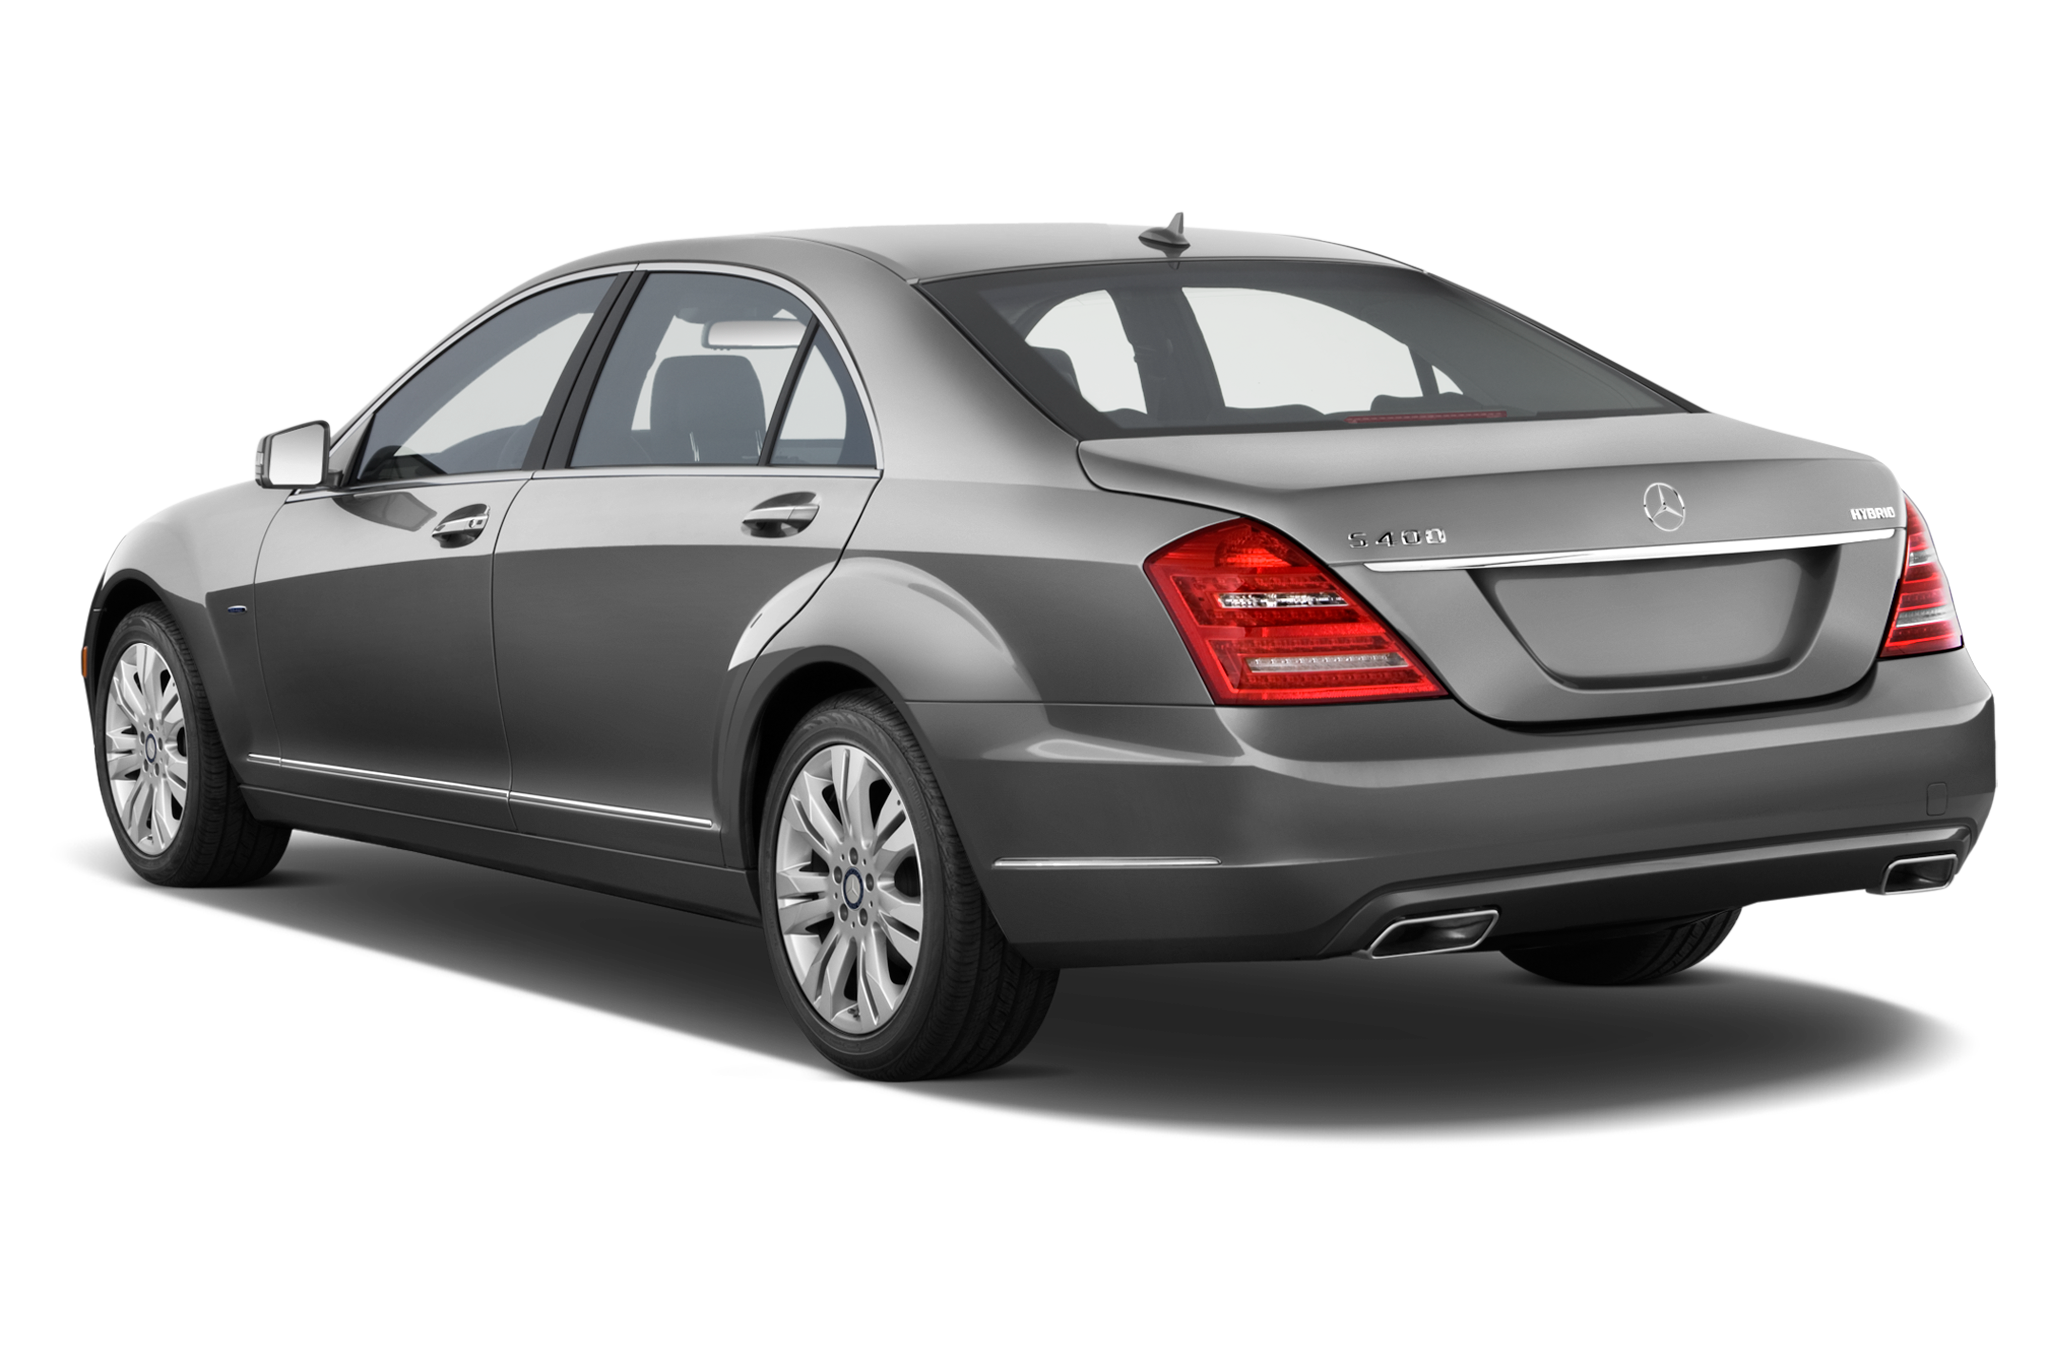 2010 mercedes benz s400 hybrid mercedes benz luxury for Pictures of a mercedes benz